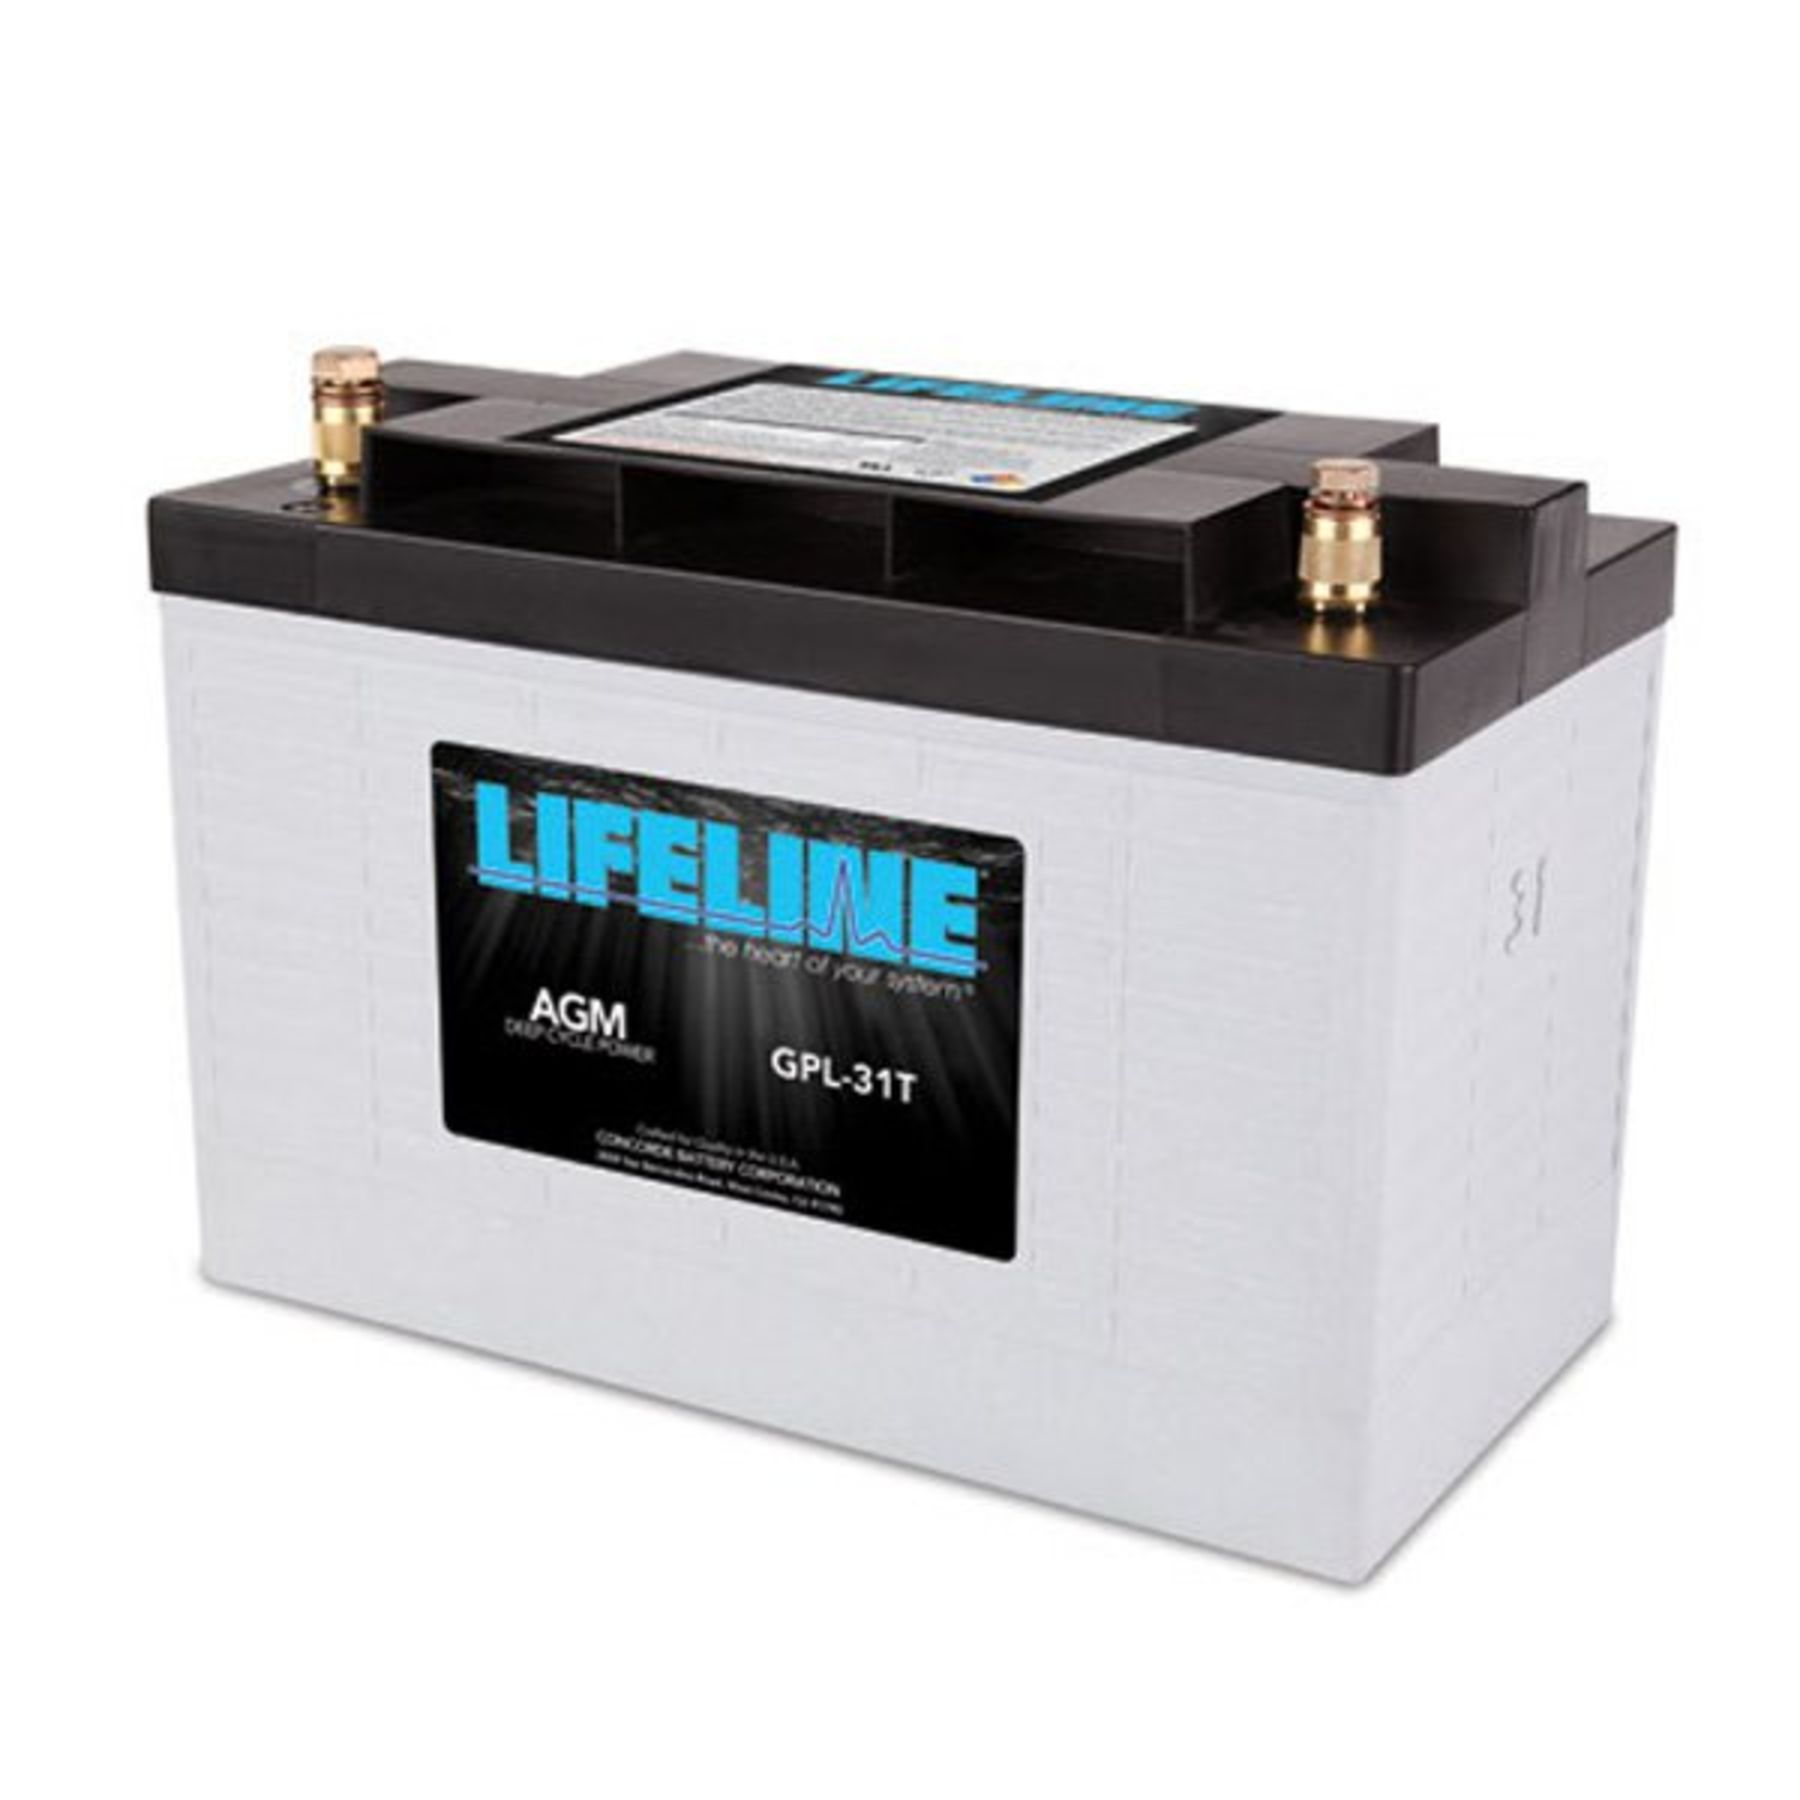 Lifeline 12v 125 Ah Deep Cycle Sealed Agm Battery Gpl 31xt